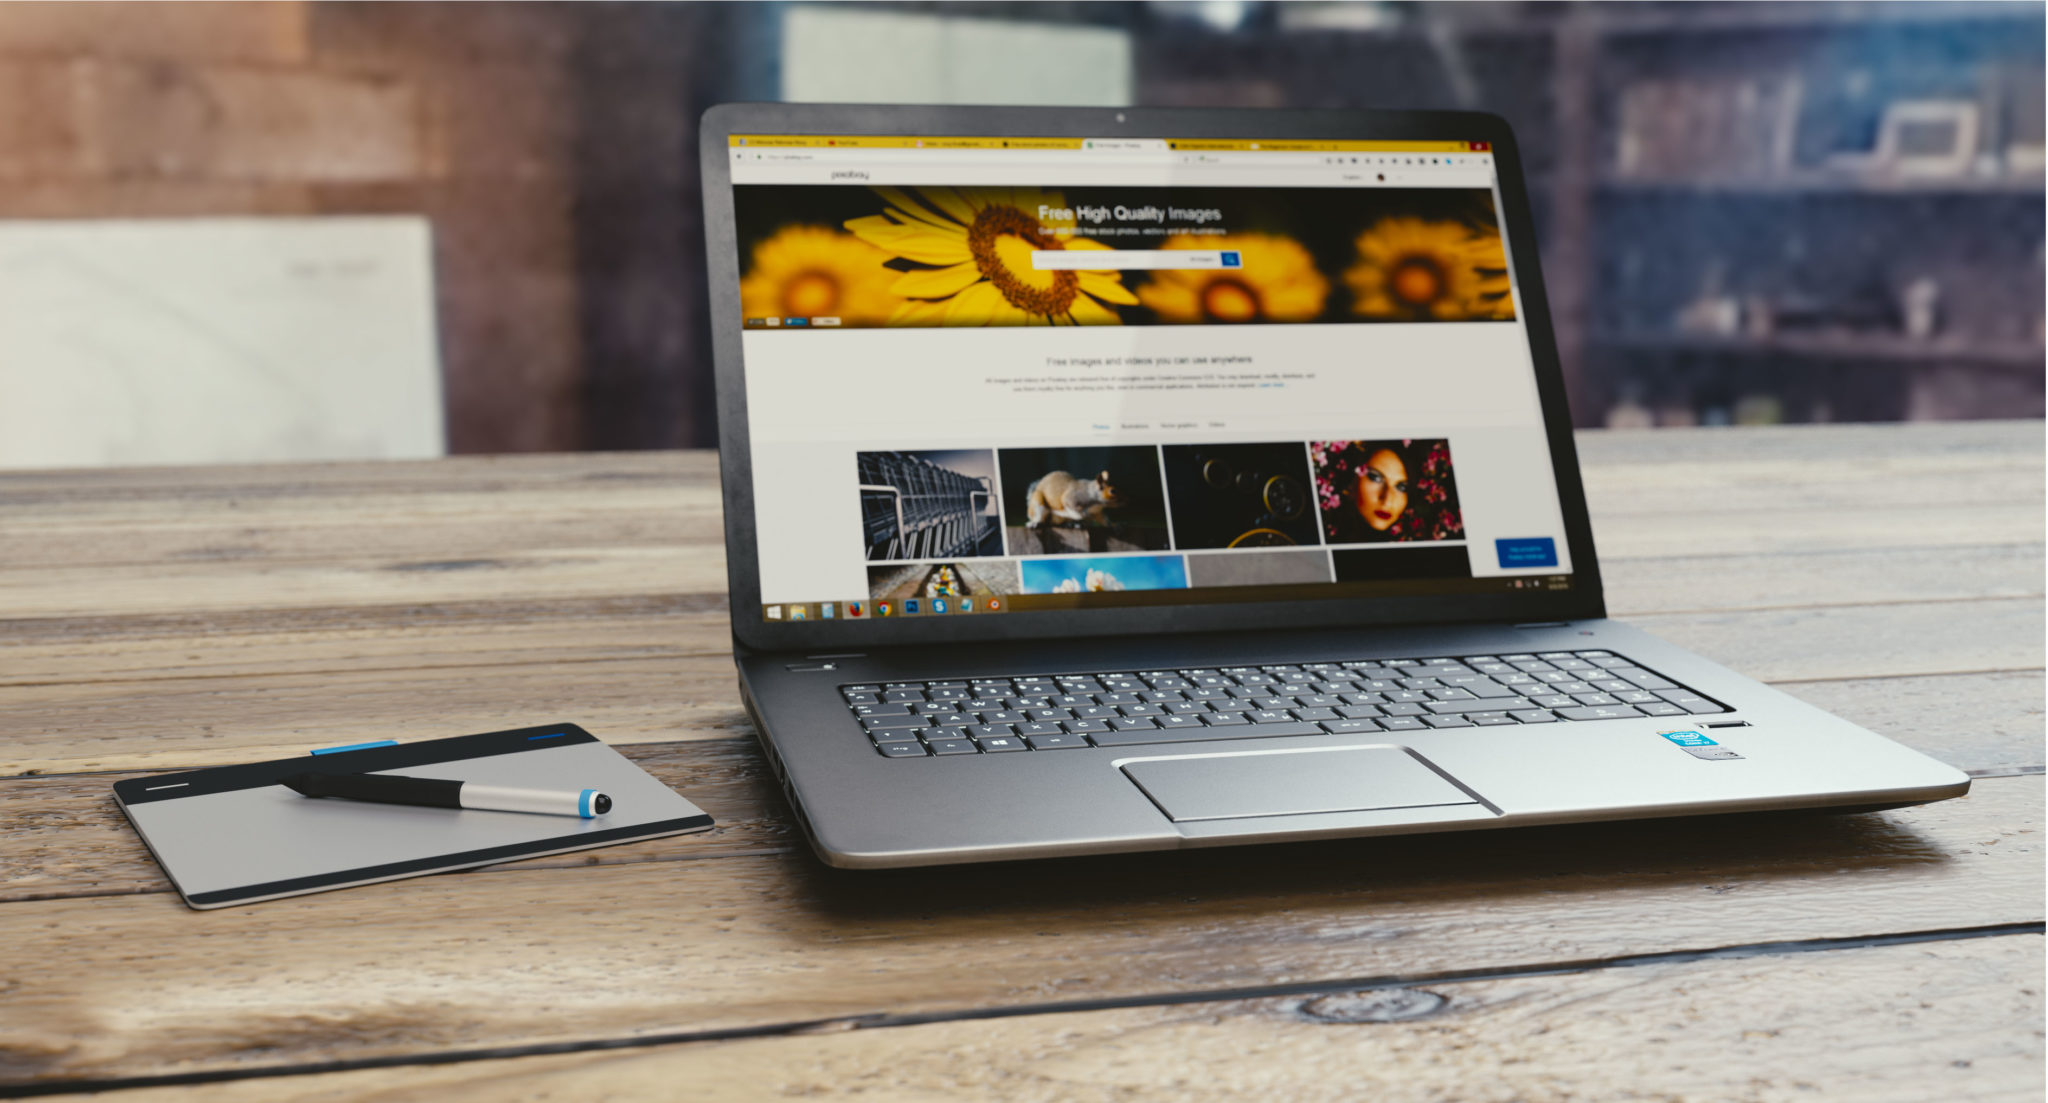 What types of laptops are important to consider before making a purchase